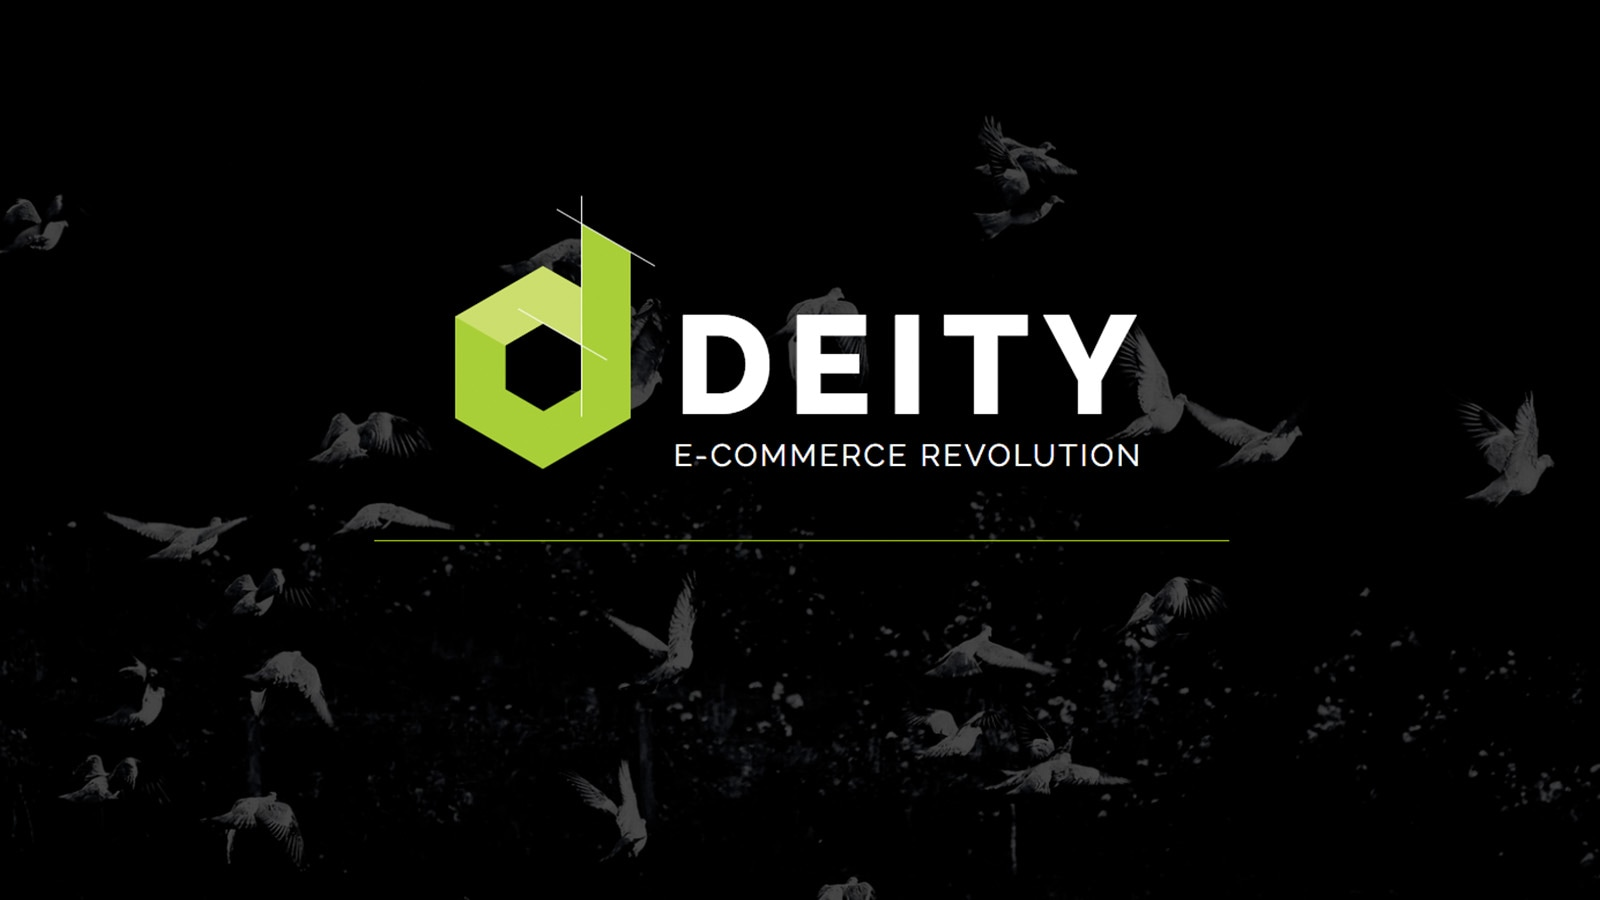 deity and interactiv4 team up to develop the new pwa for magento2